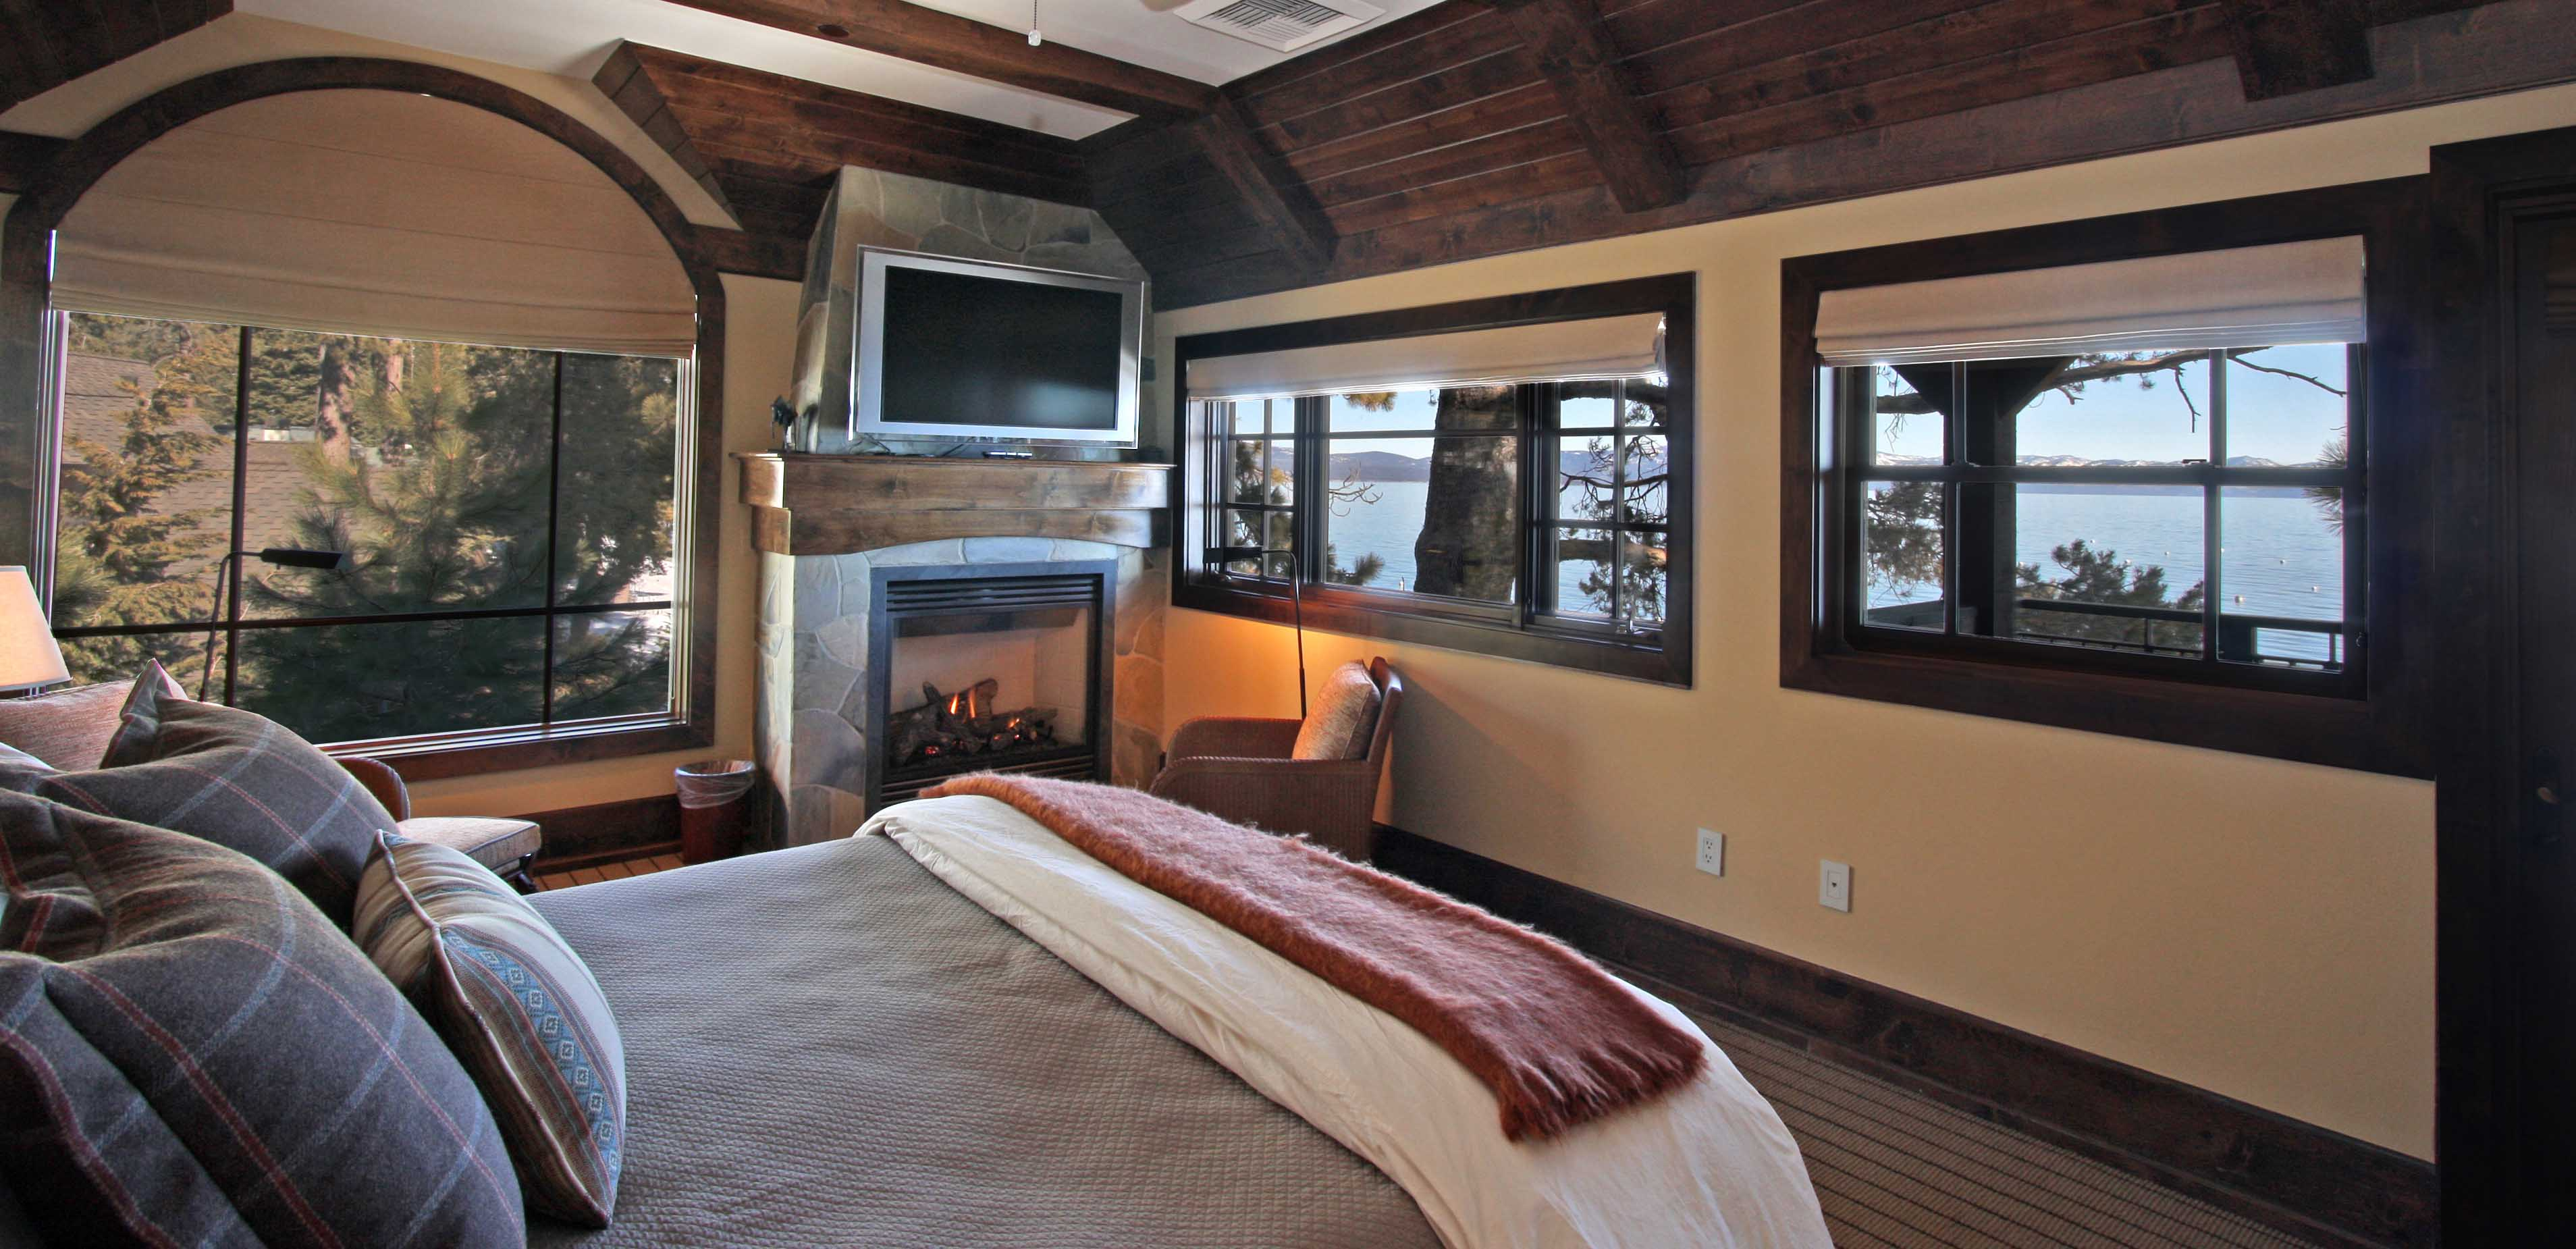 Watson Room is an excellent choice of stay for a getaway